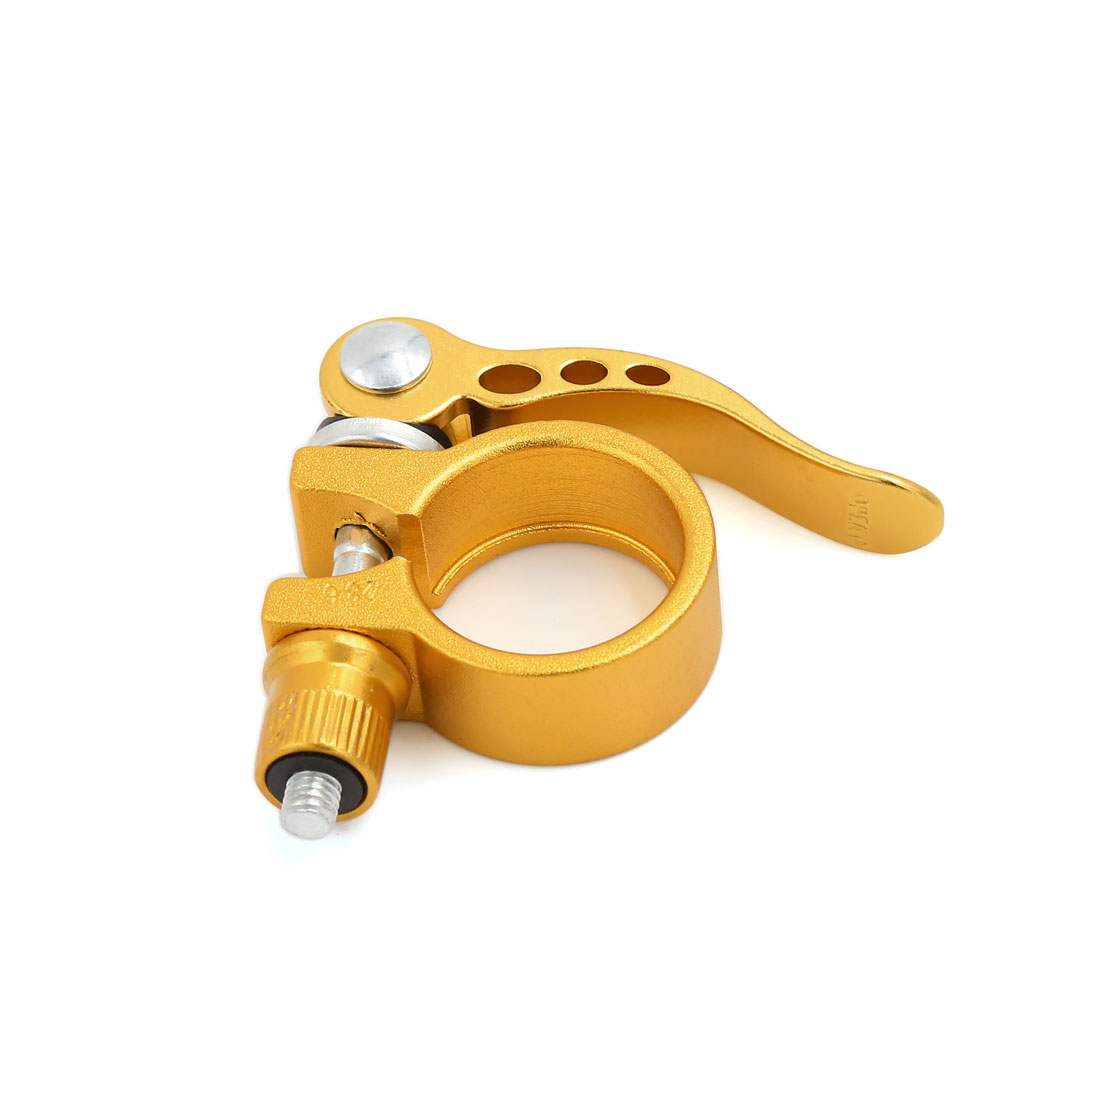 28.6mm Quick Release Seatpost Seat Post Clamp Gold Tone for Bicycle Mountain Road Bike MTB